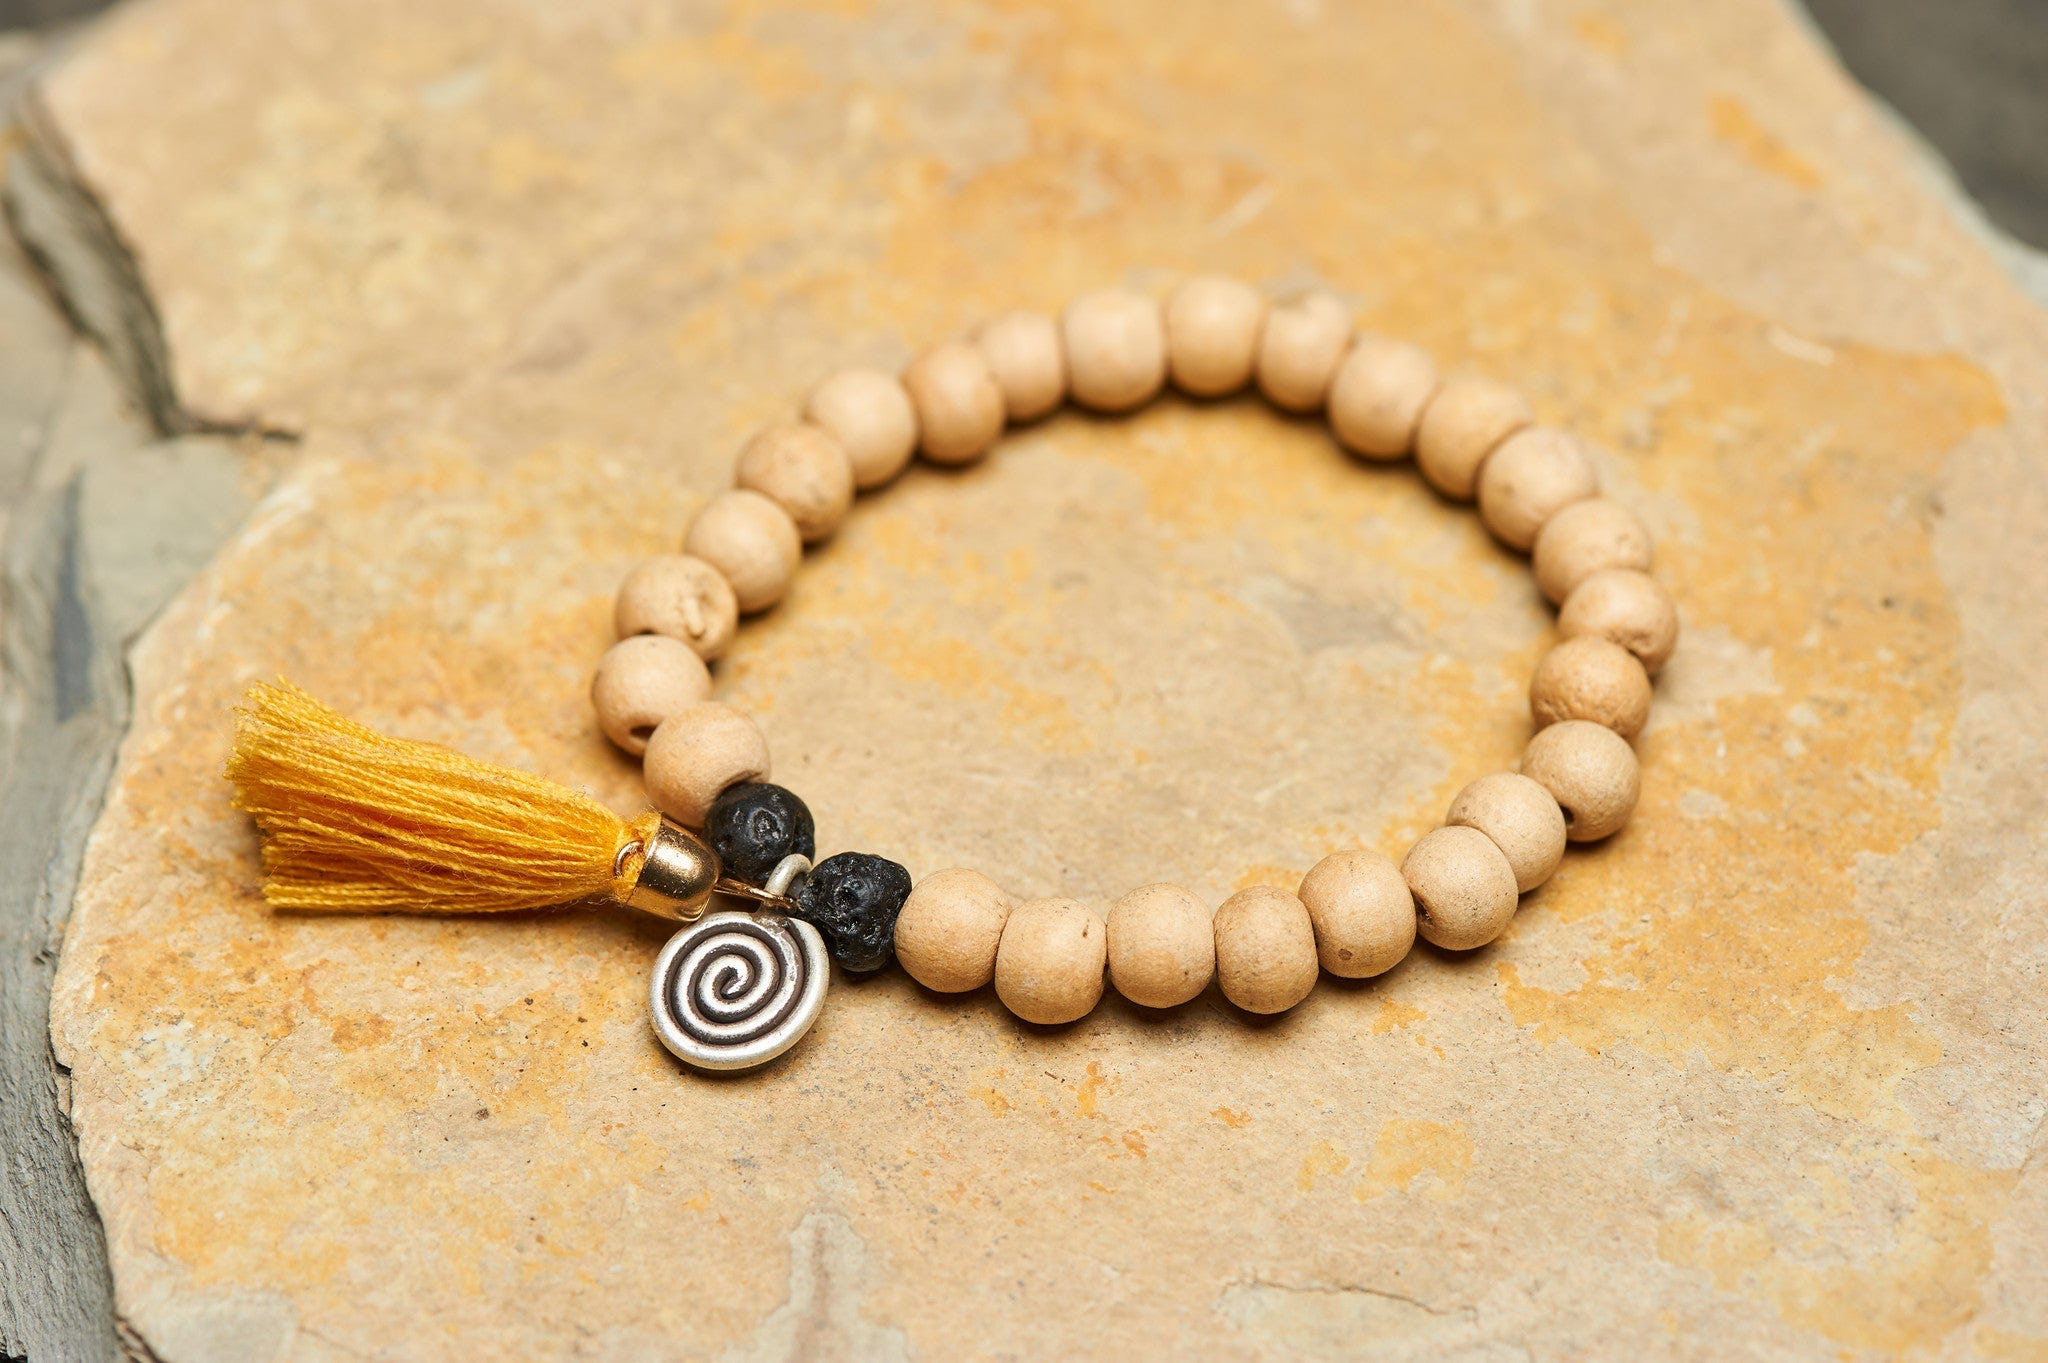 brown bead bruvero zen wooden bracelet prayer round products wood handicraft men braclet jewelry minimalist letter buddha beads cool for pulseira